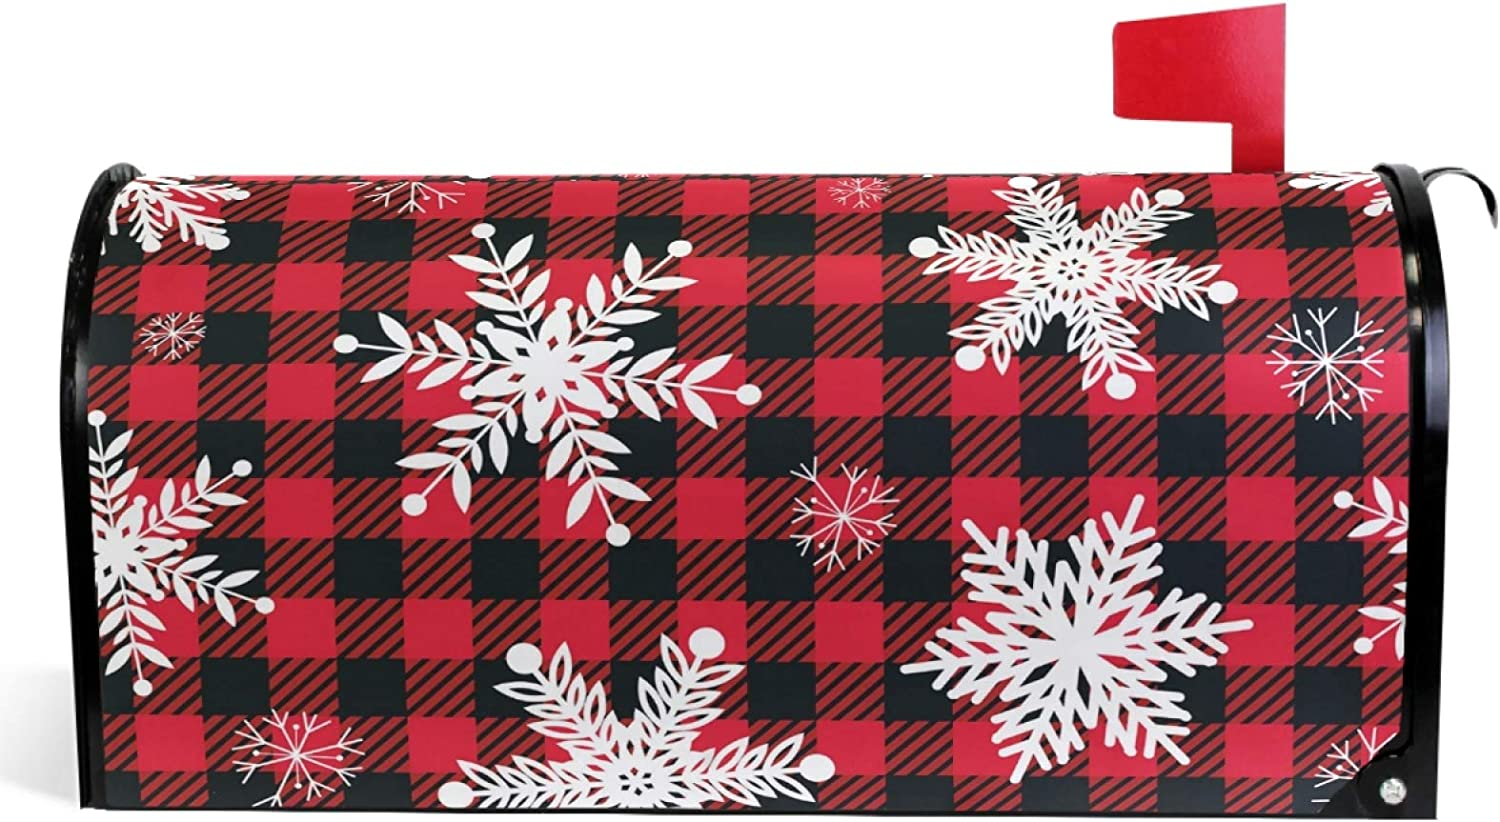 "Vdsrup Buffalo Plaid Snowflakes Mailbox Covers Magnetic Winter Christmas Mailbox Cover Red Check Mailbox Wraps Post Letter Box Cover Garden Decoratives Standard Size 18"" X 21"""